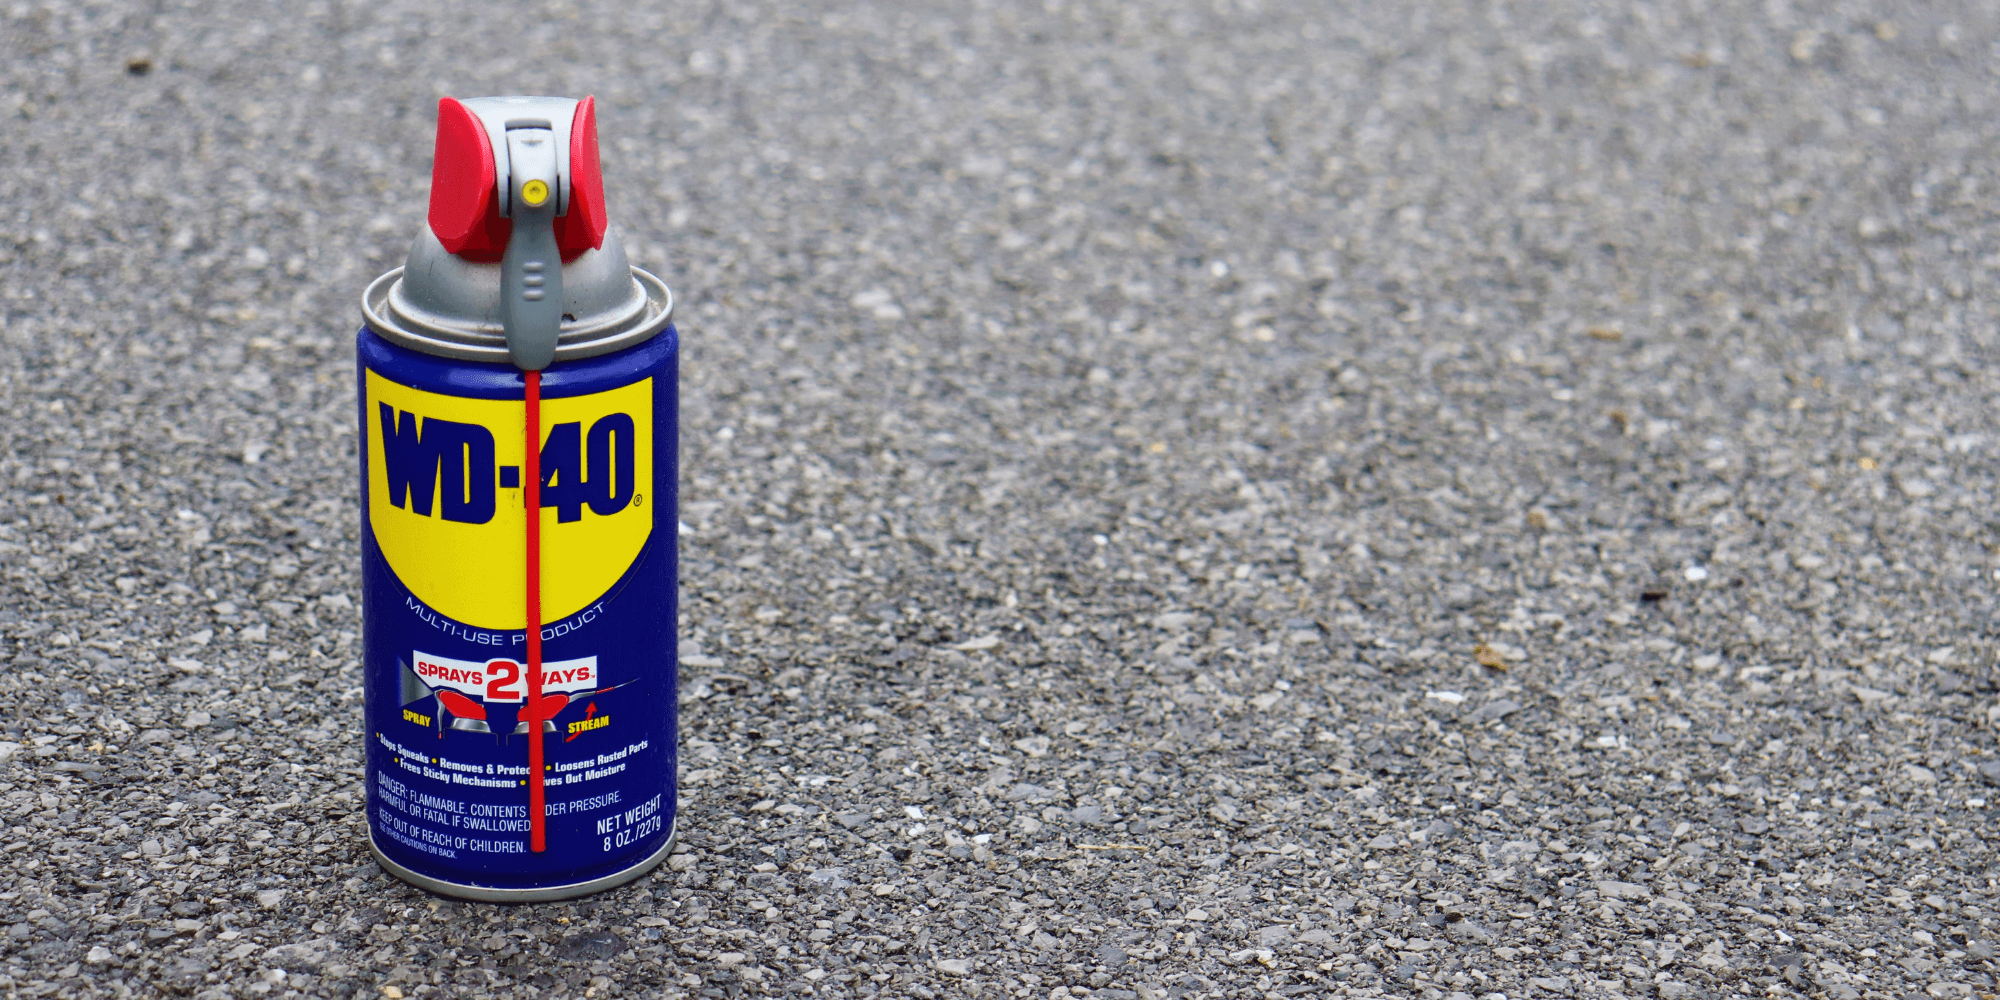 WD-40 for container care